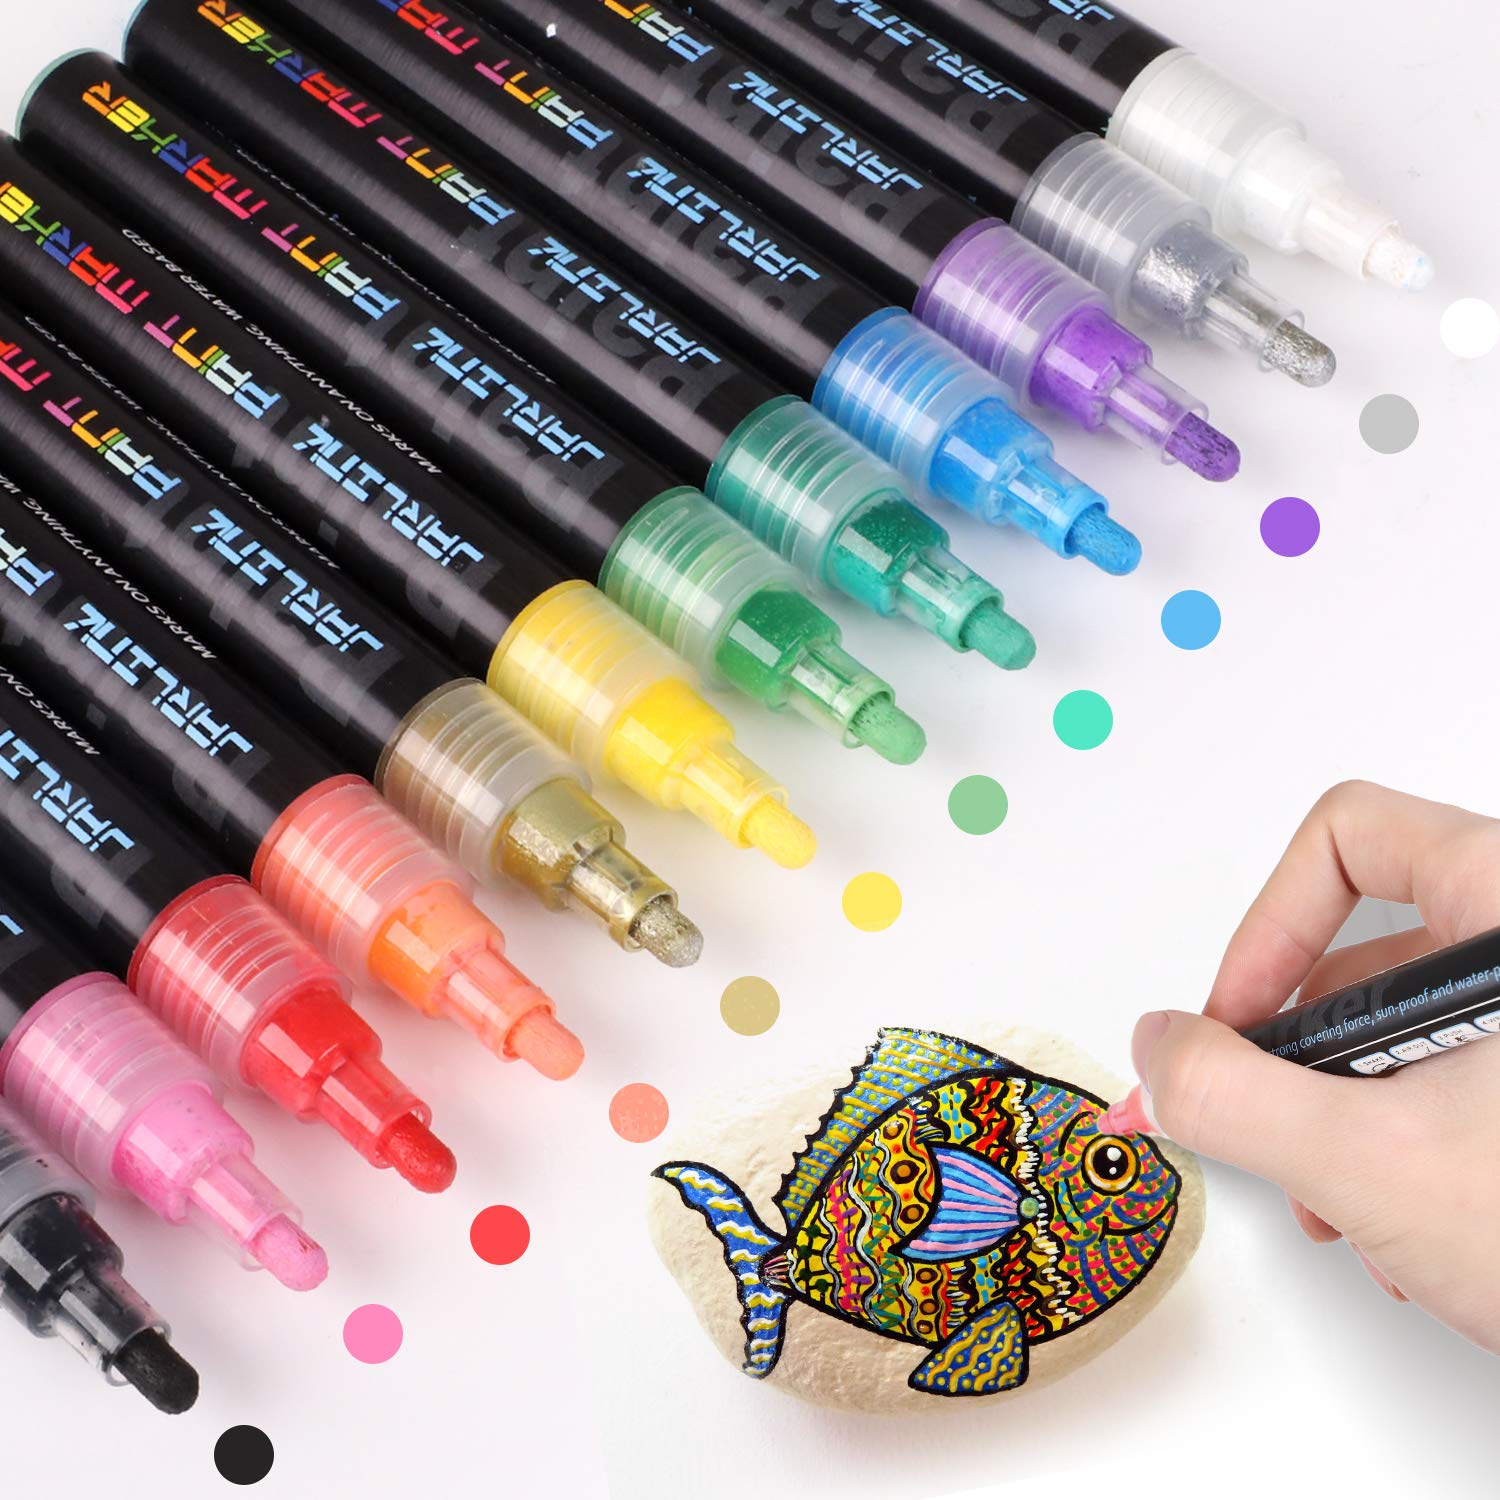 JARLINK Acrylic Paint Markers Set, 12 Colors Paint Pens for Rock Painting, Stone, Metal, Glass, Ceramic and Any Surface, Water Resistant, Quick Dry Additional 40 Chalkboard Labels